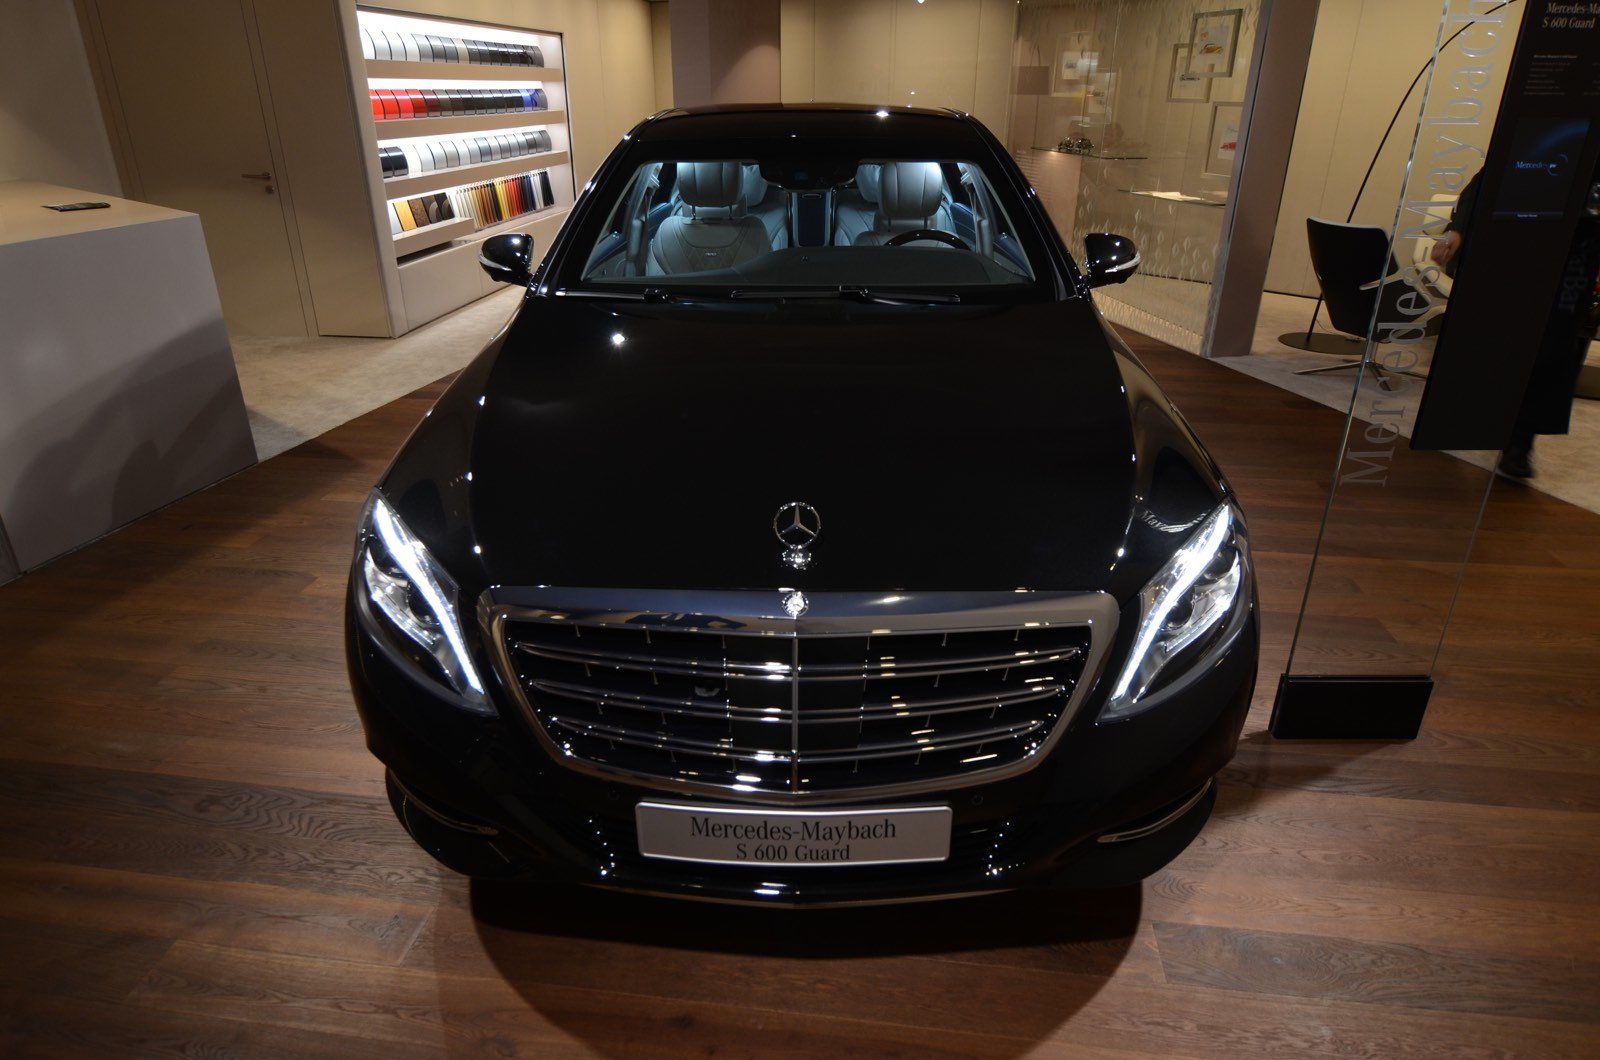 geneva 2016 mercedes maybach s600 guard gtspirit. Black Bedroom Furniture Sets. Home Design Ideas